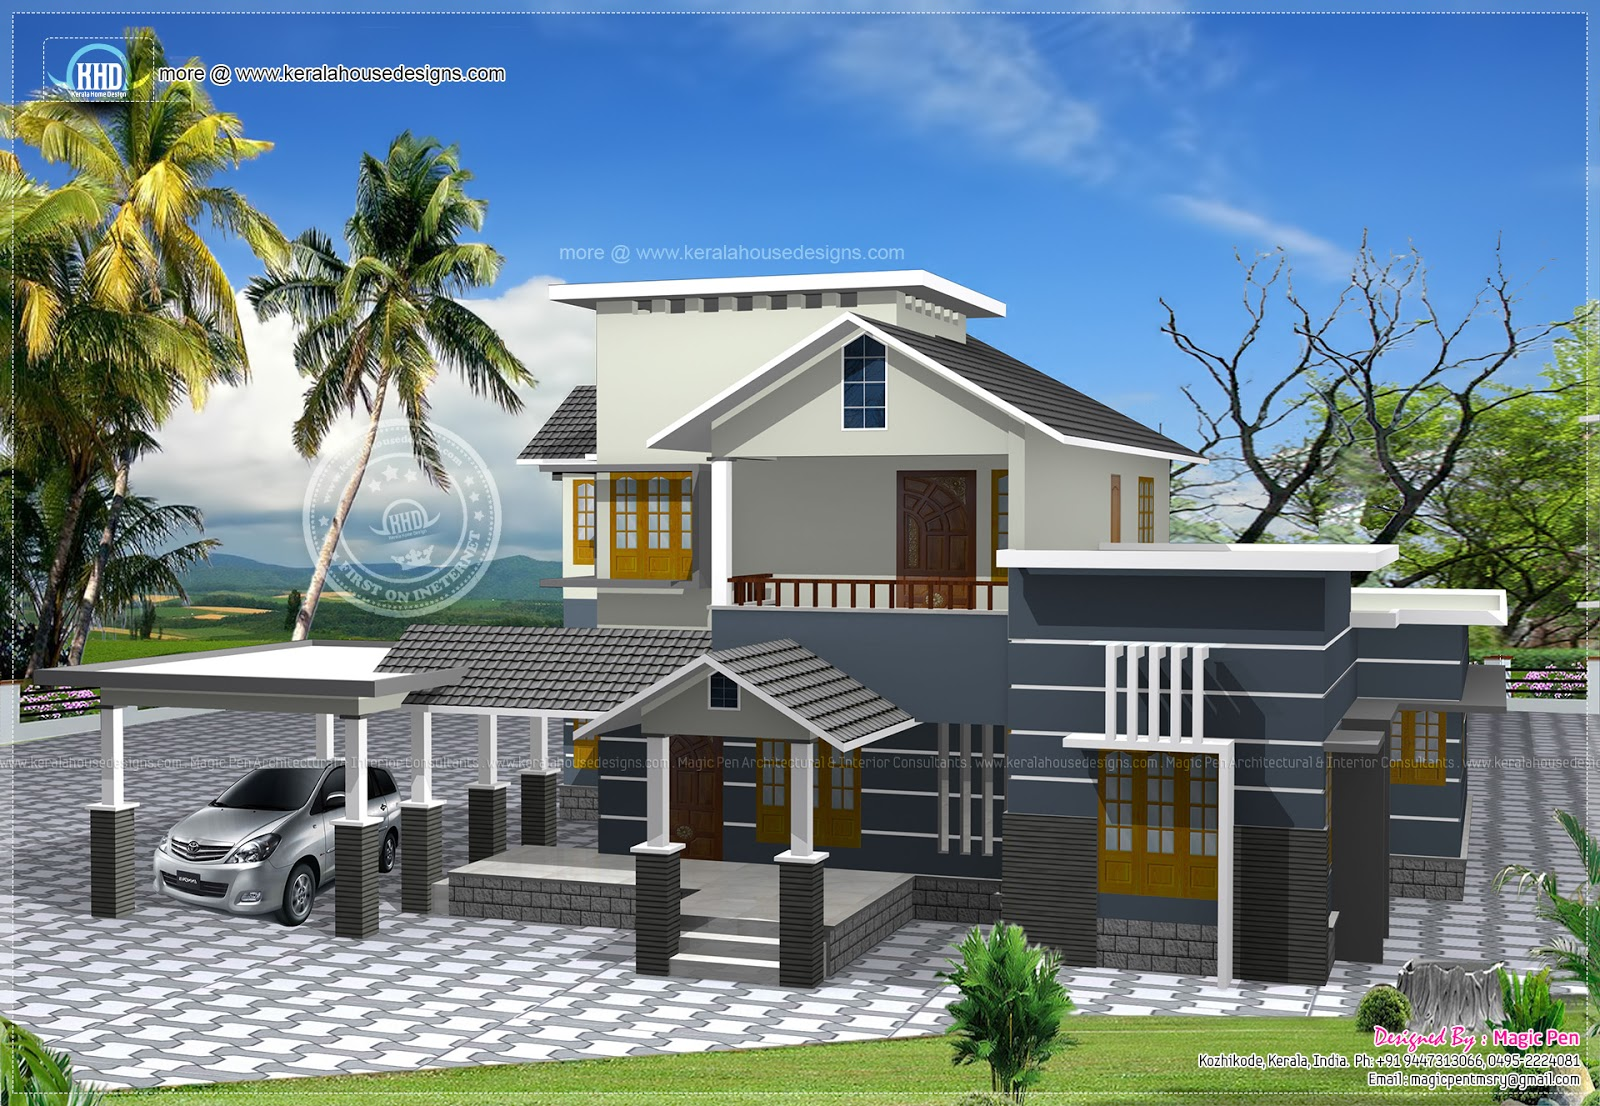 Double storied residential rendering kerala home design for Two storey house plans in kerala